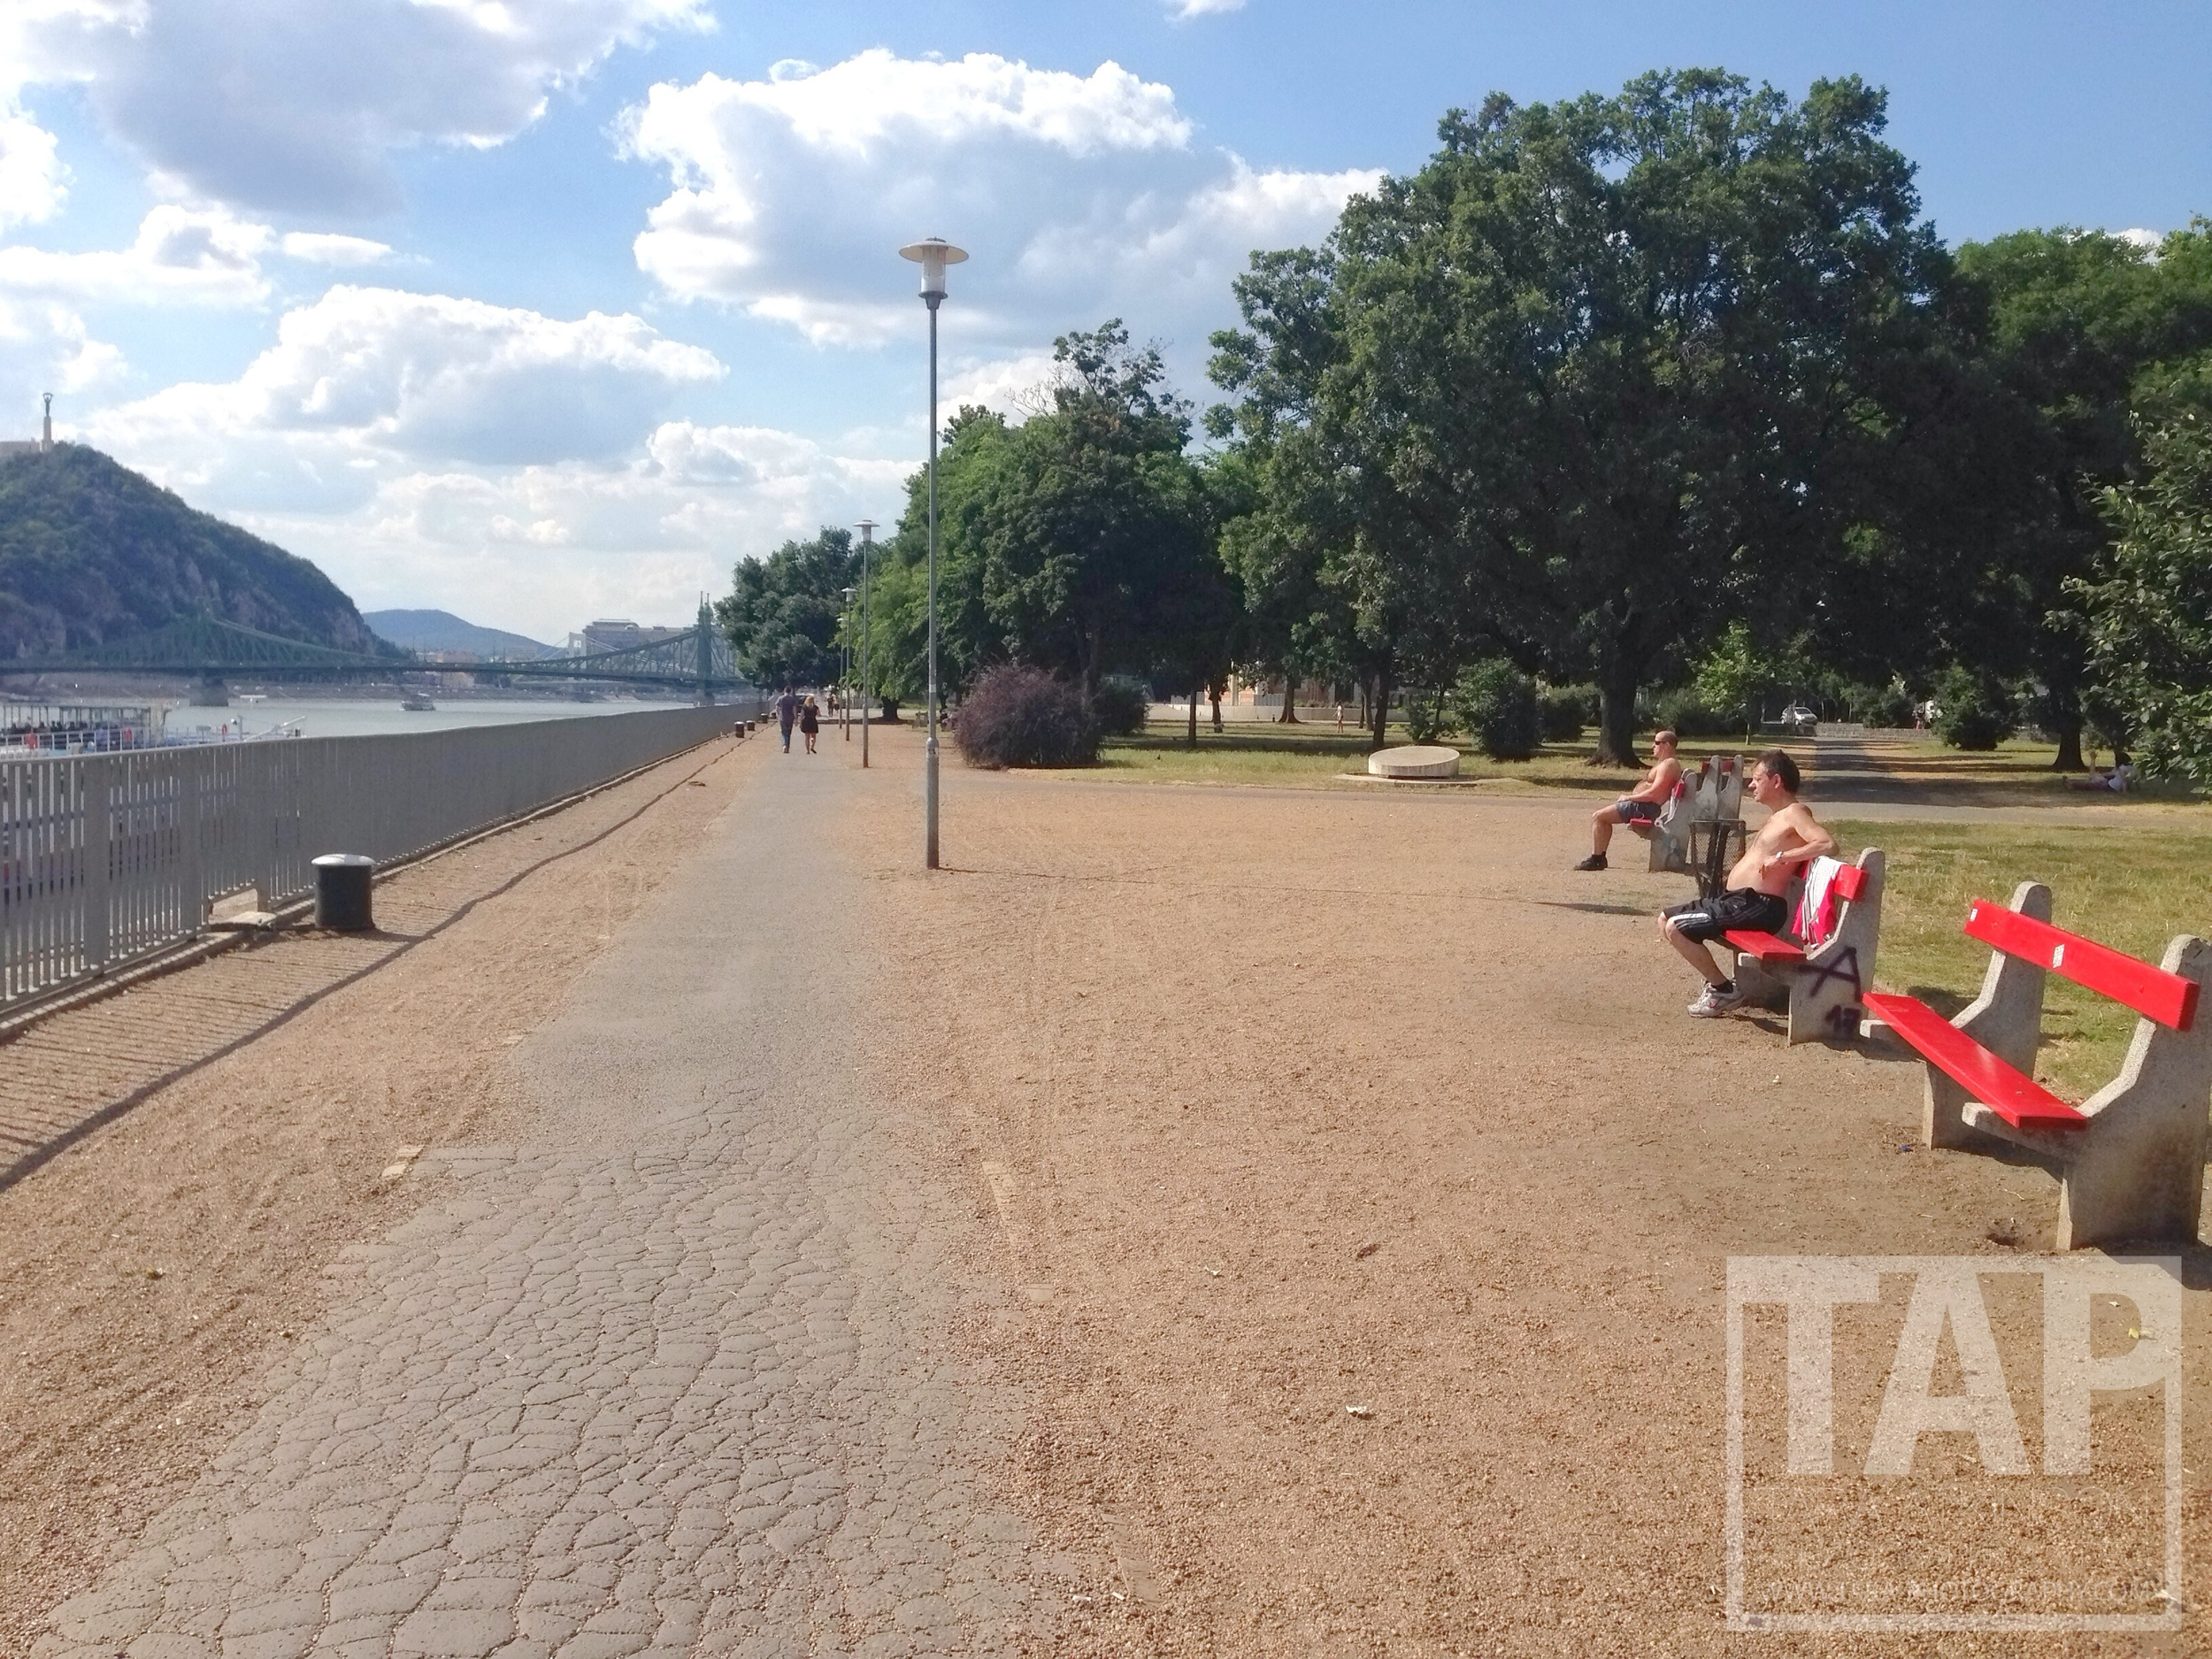 Locals enjoying the rays on the Danube